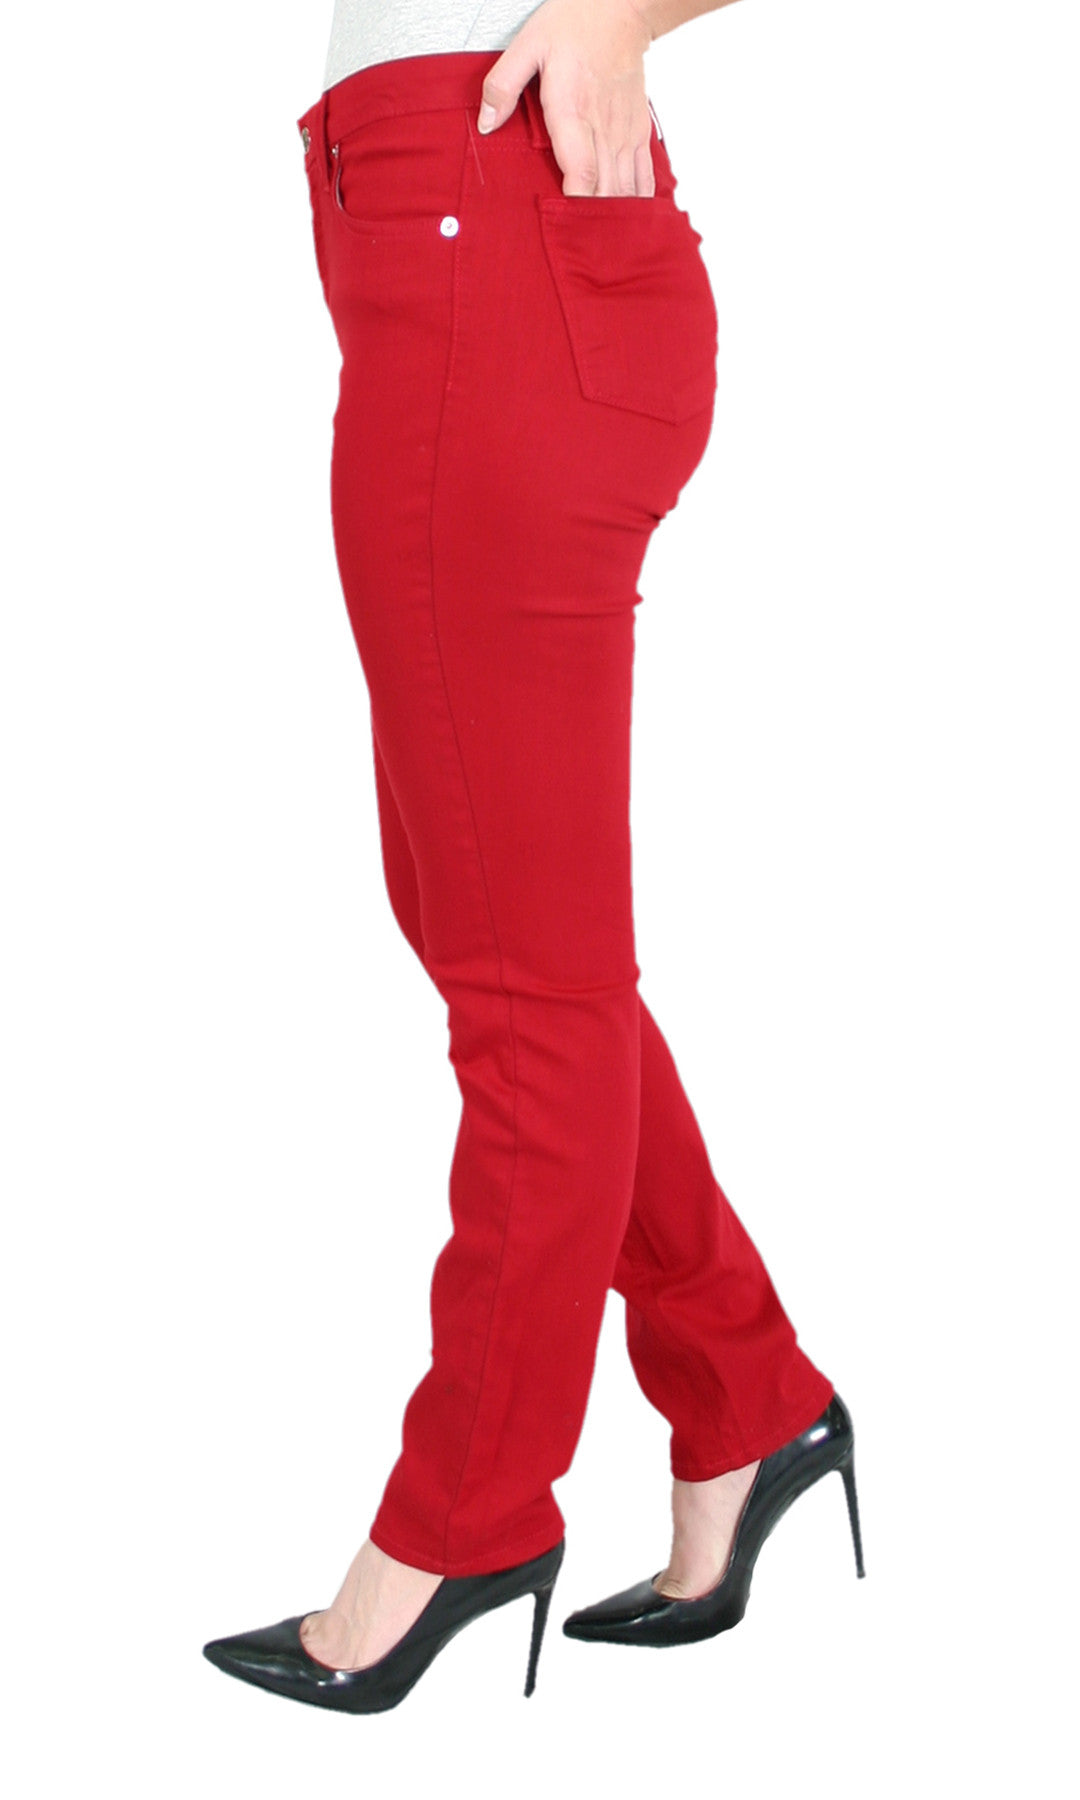 Trueslim Red Jeggings